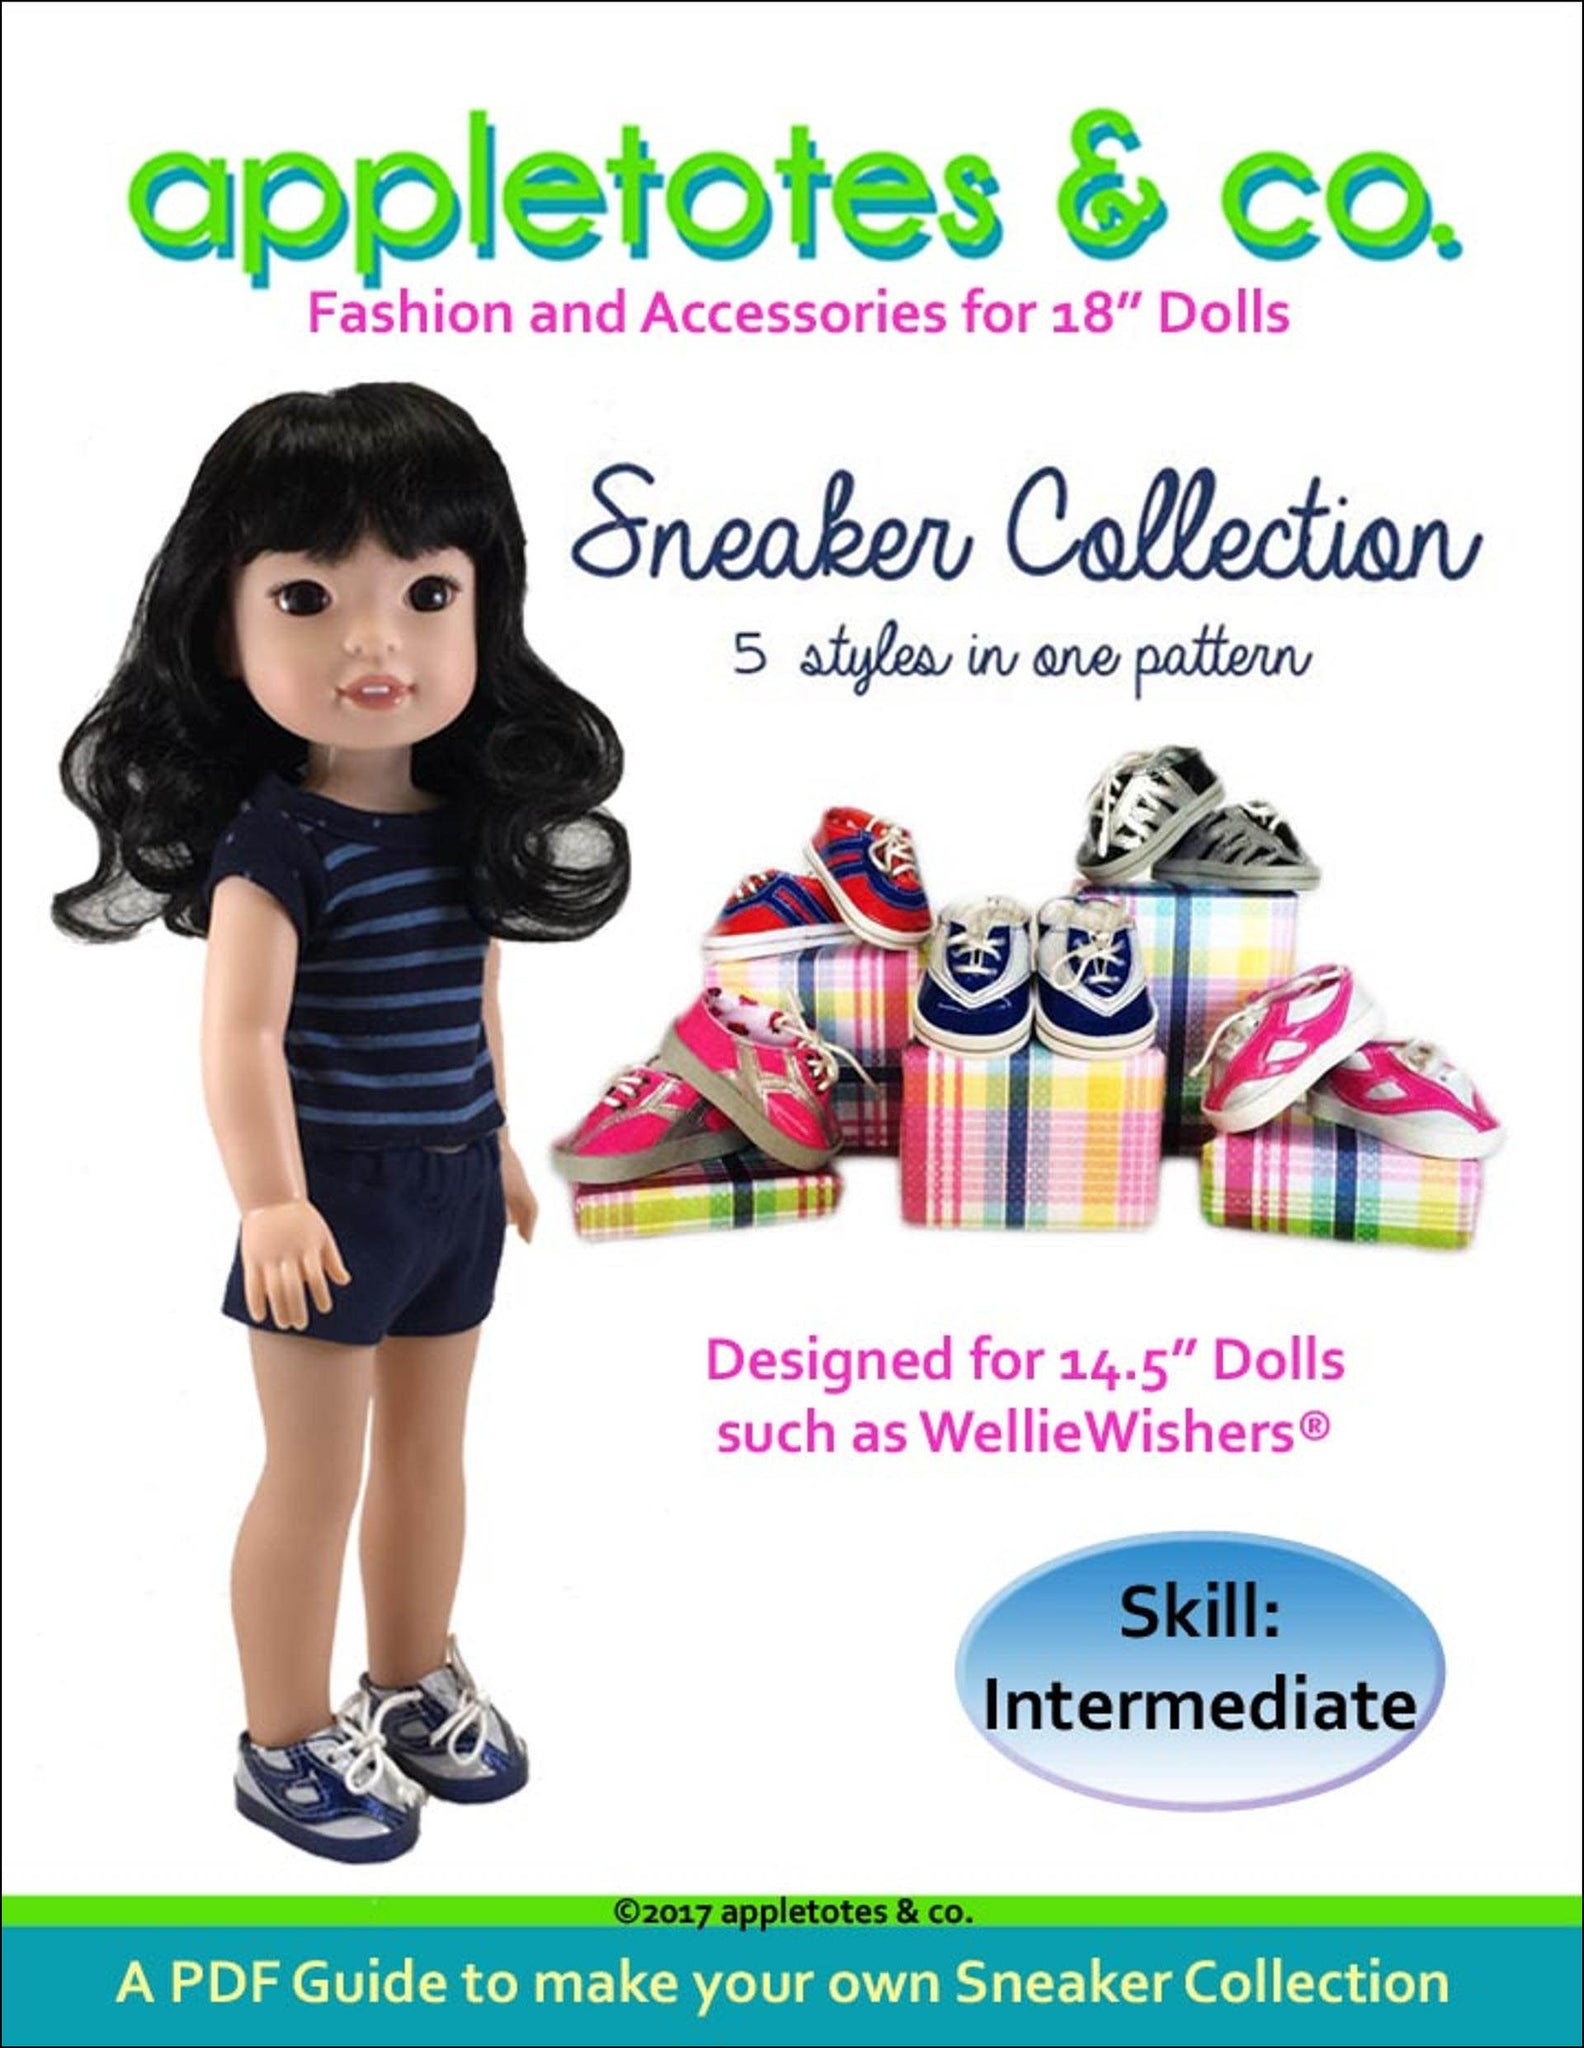 "Sneaker Collection Sewing Patterns for 14.5"" Dolls"